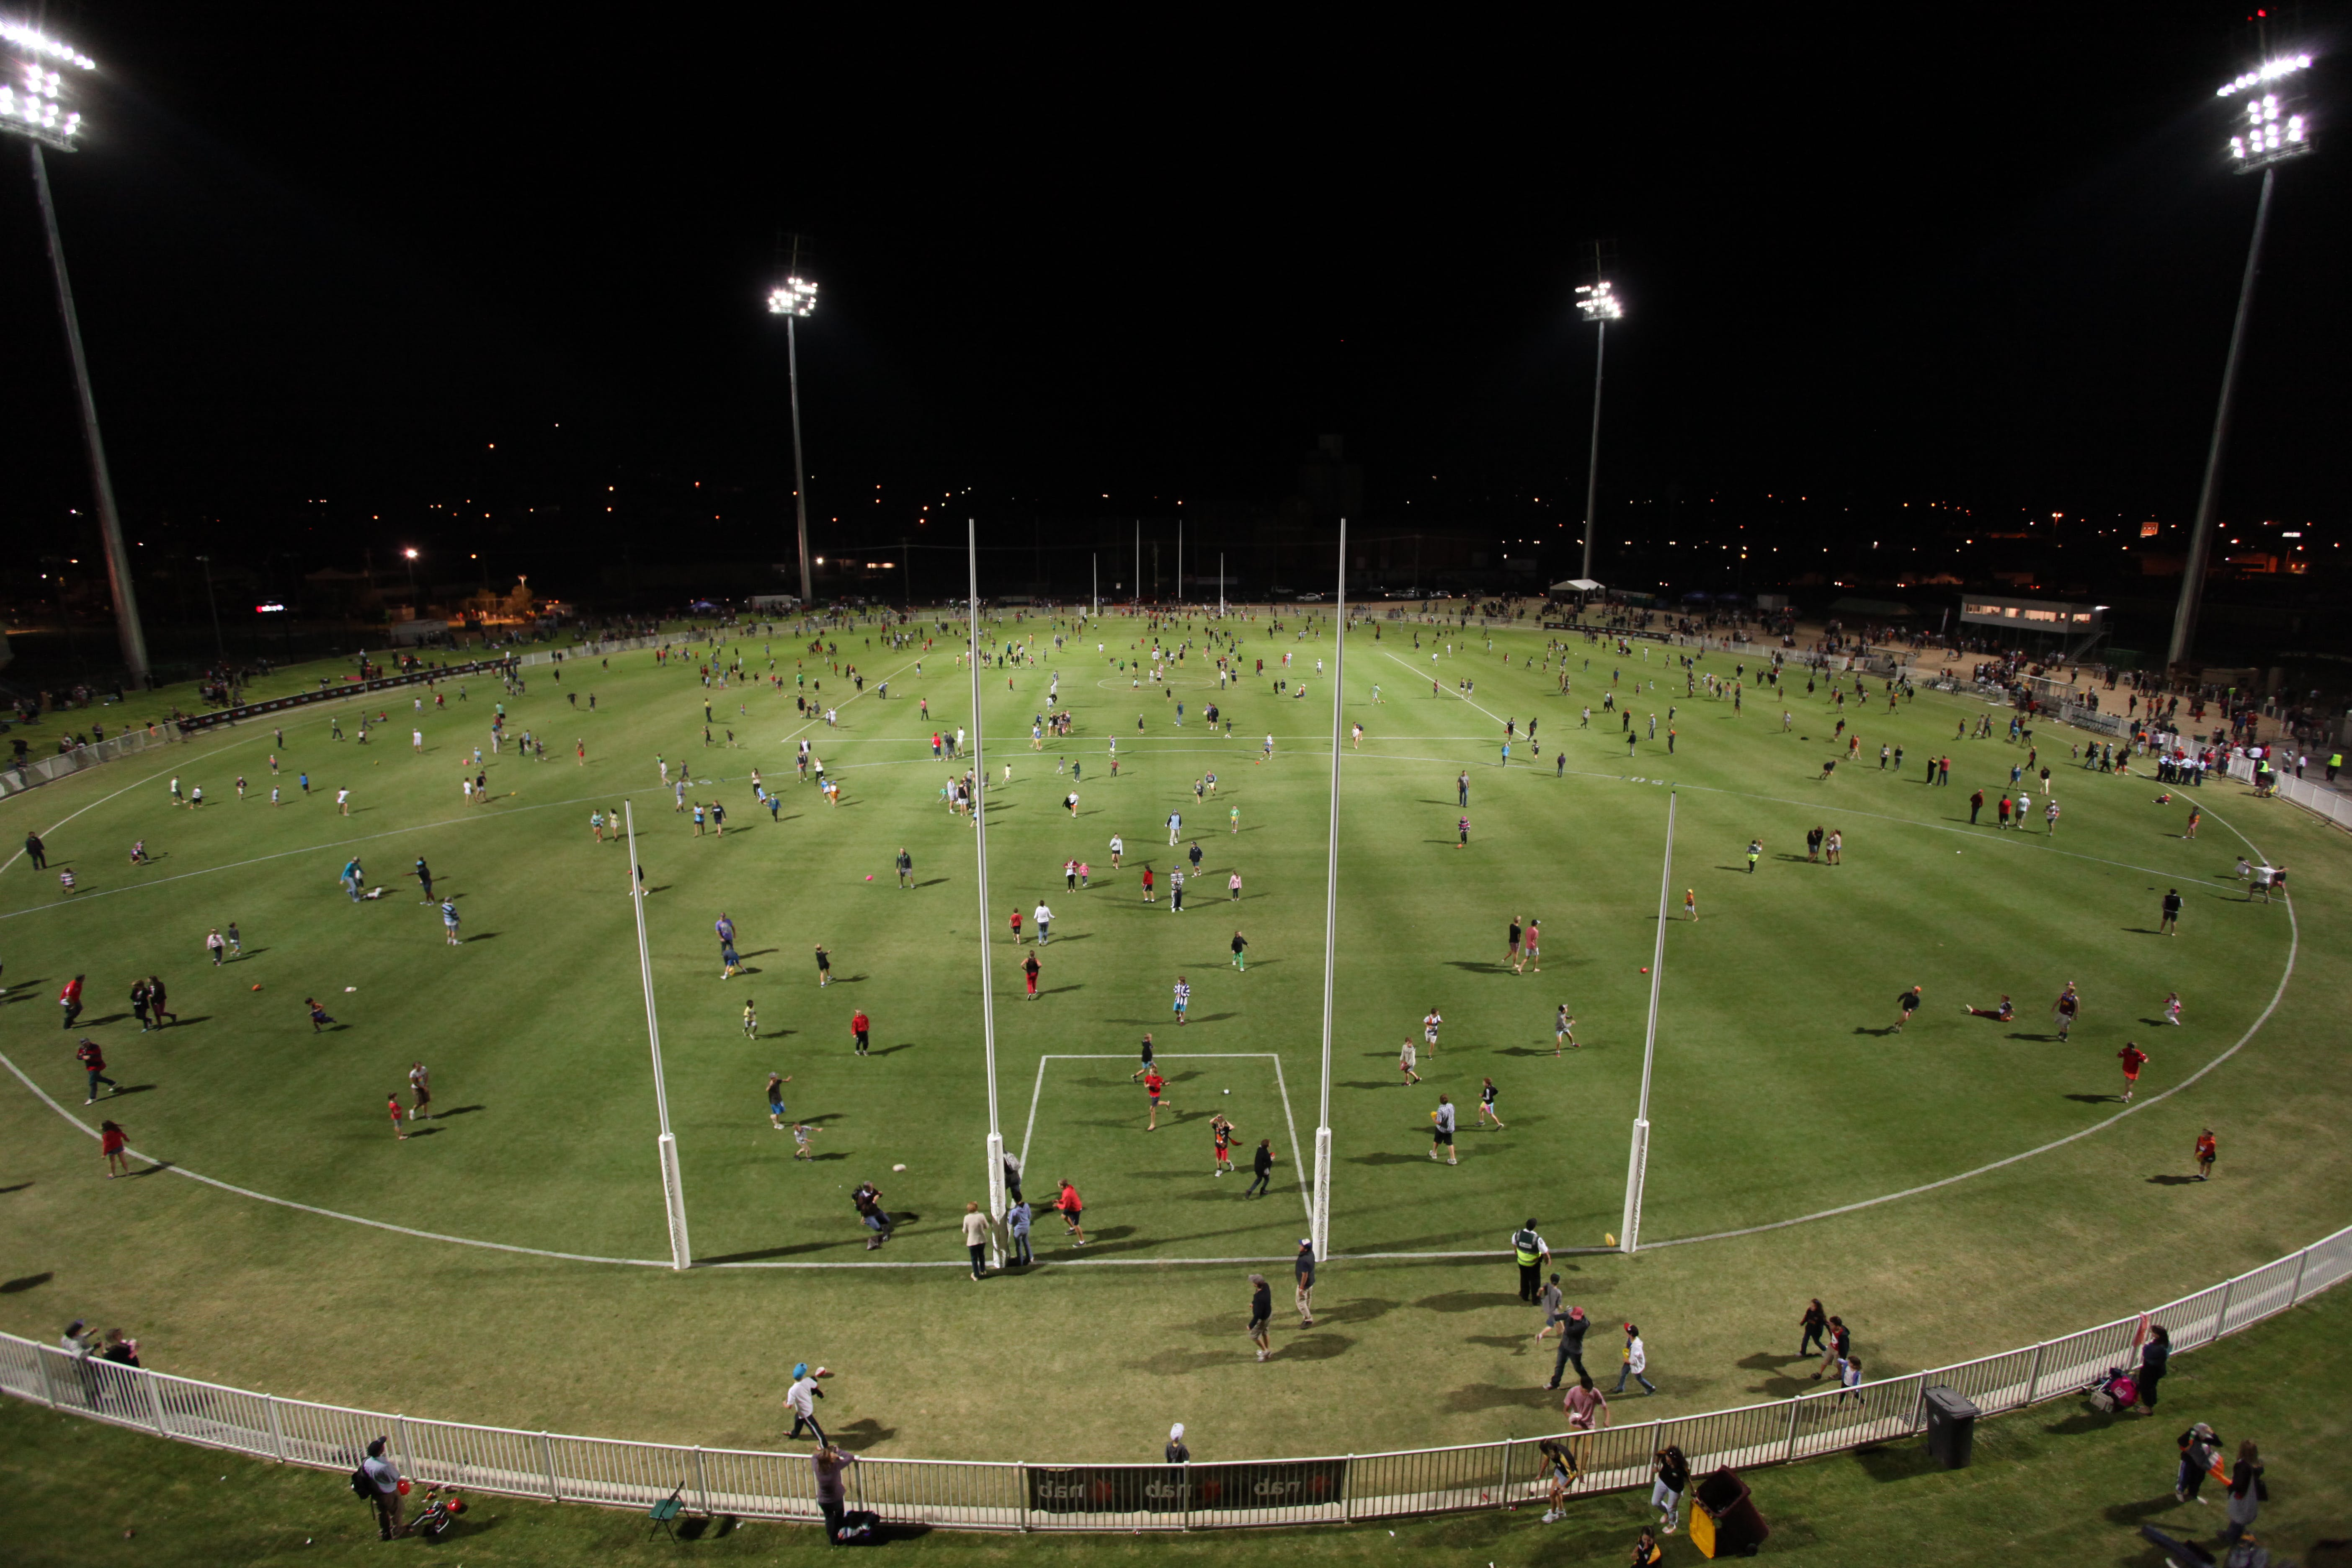 Robertson Oval at night